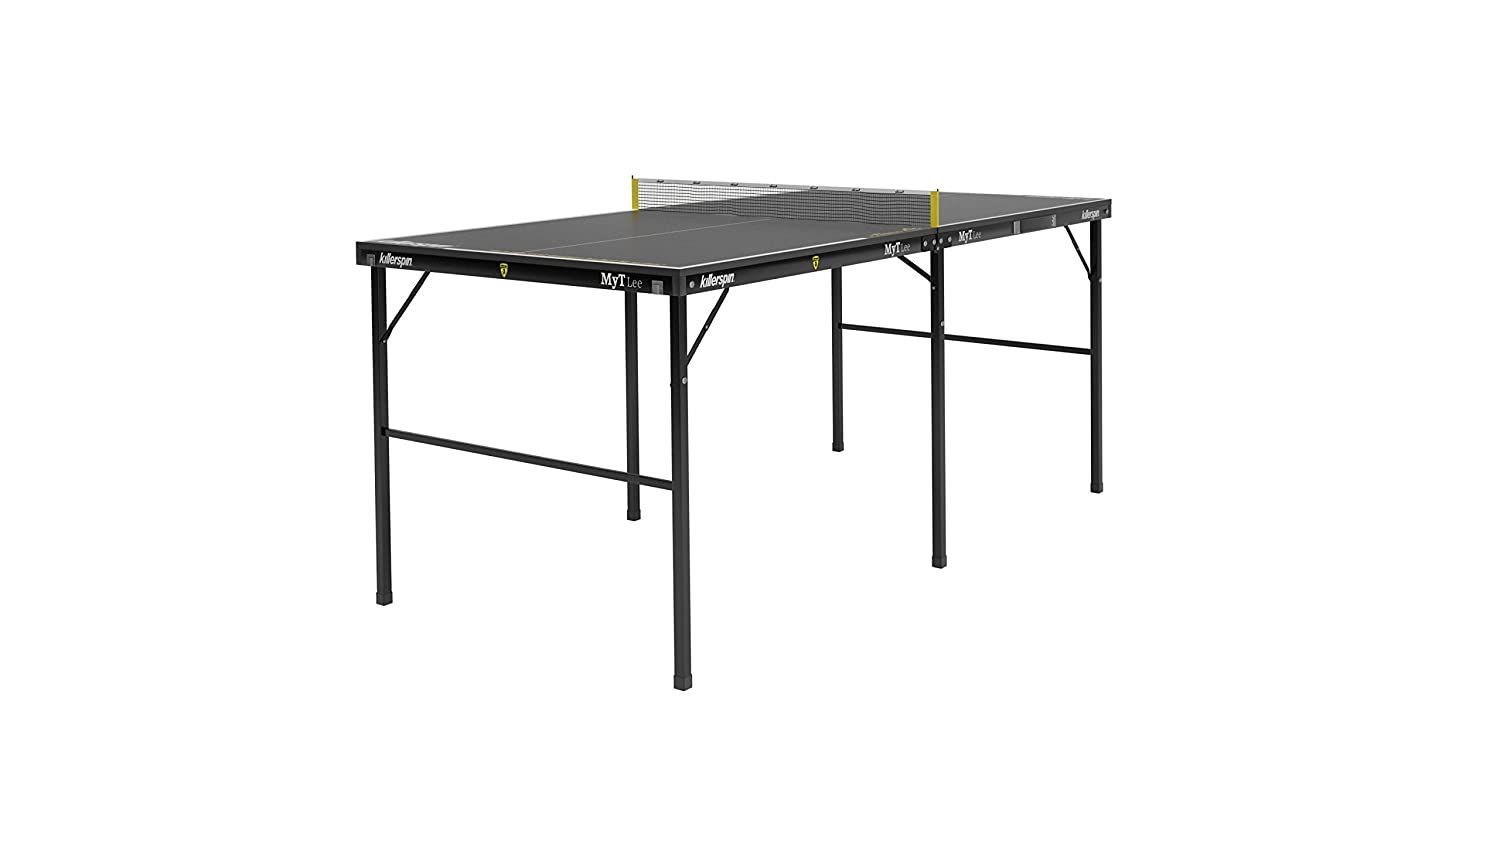 Killerspin MyT Leeテーブルテニステーブル – Small折りたたみ式ブラックPing Pong Table with Easy andクイックセットアップ B00K8P1PZ6